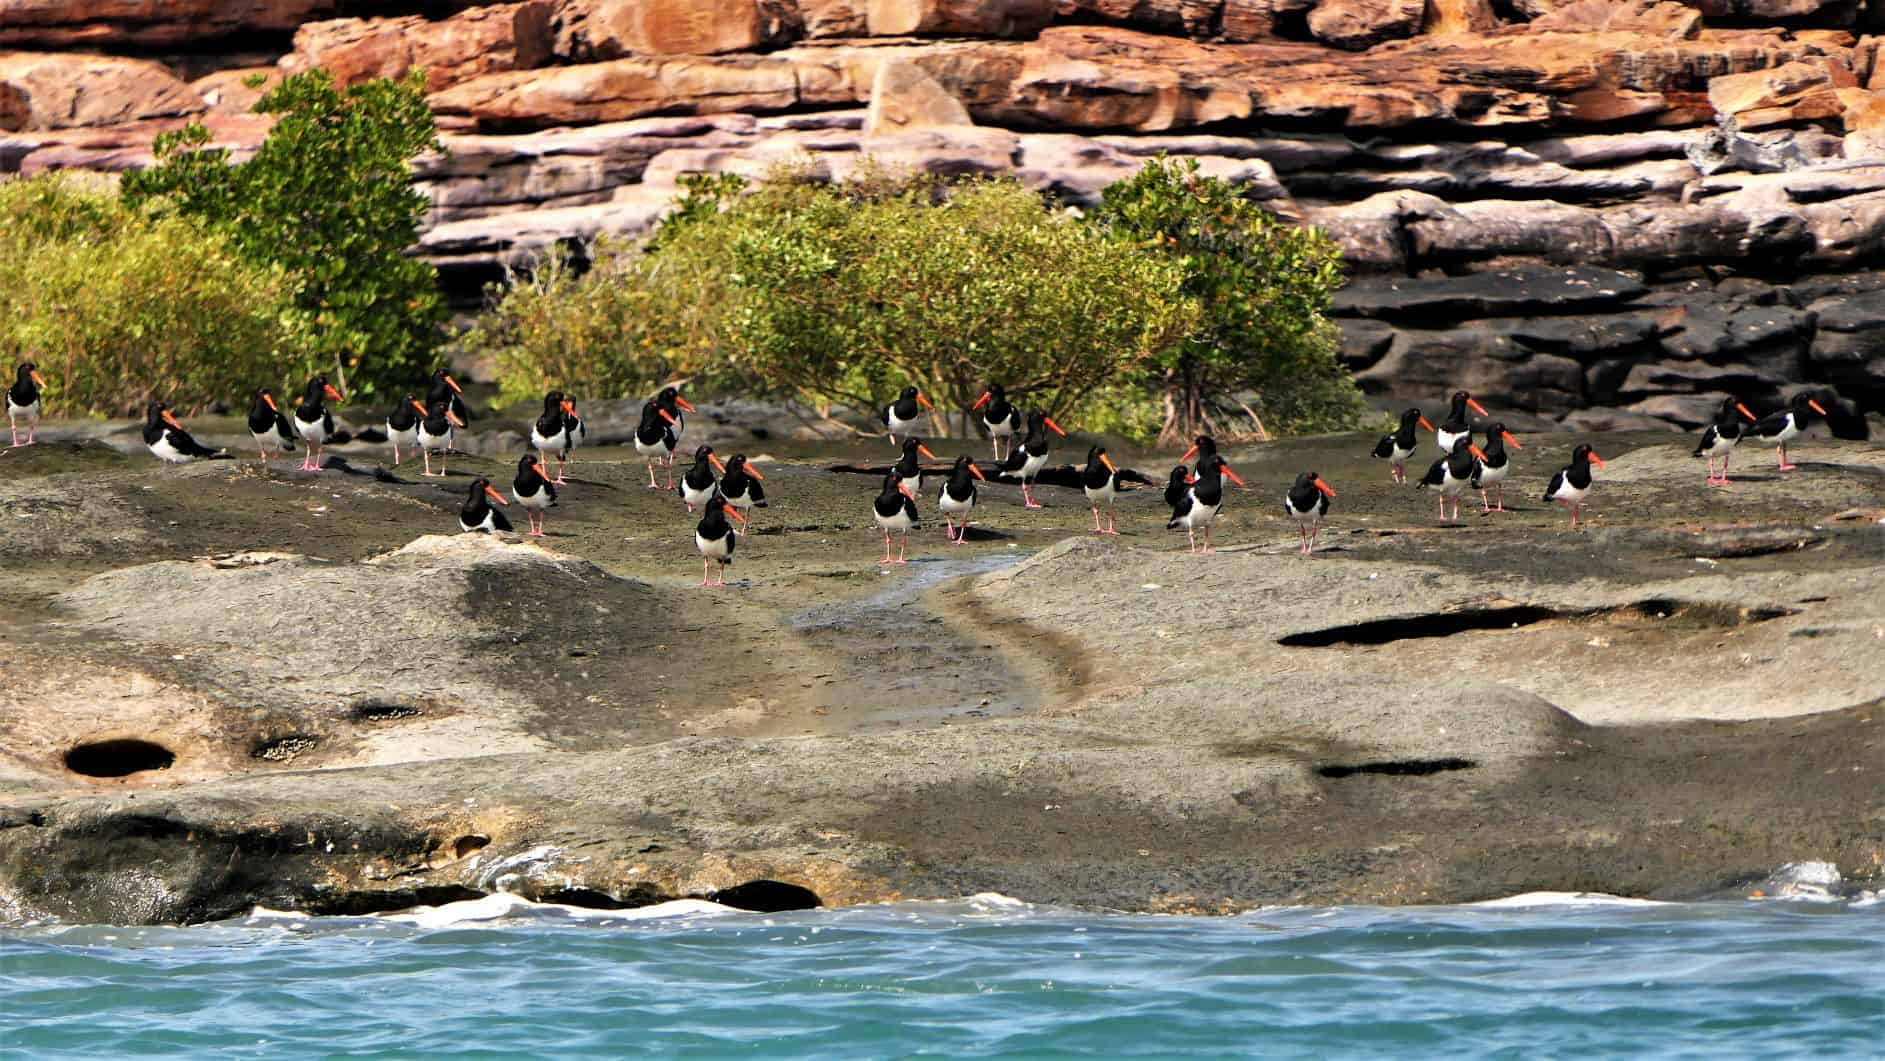 Pied Oystercatcher choir at the Warrabii West Art Site_Coral Expeditions.